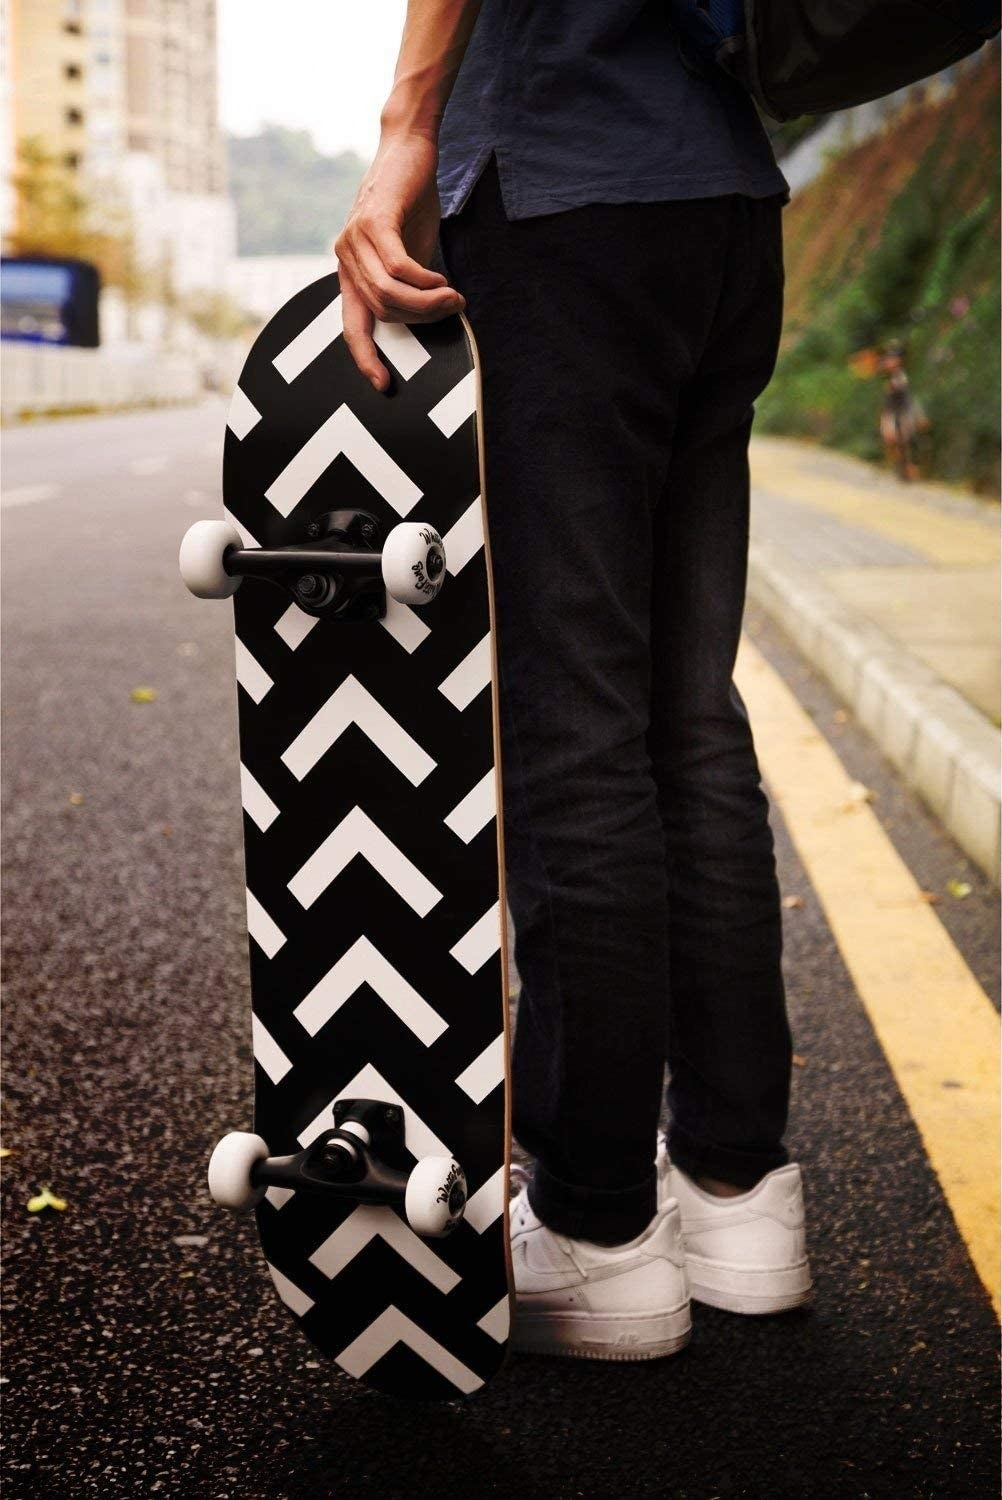 Model holding a black skateboard with black and white v-pattern on the back and two sets of white wheels